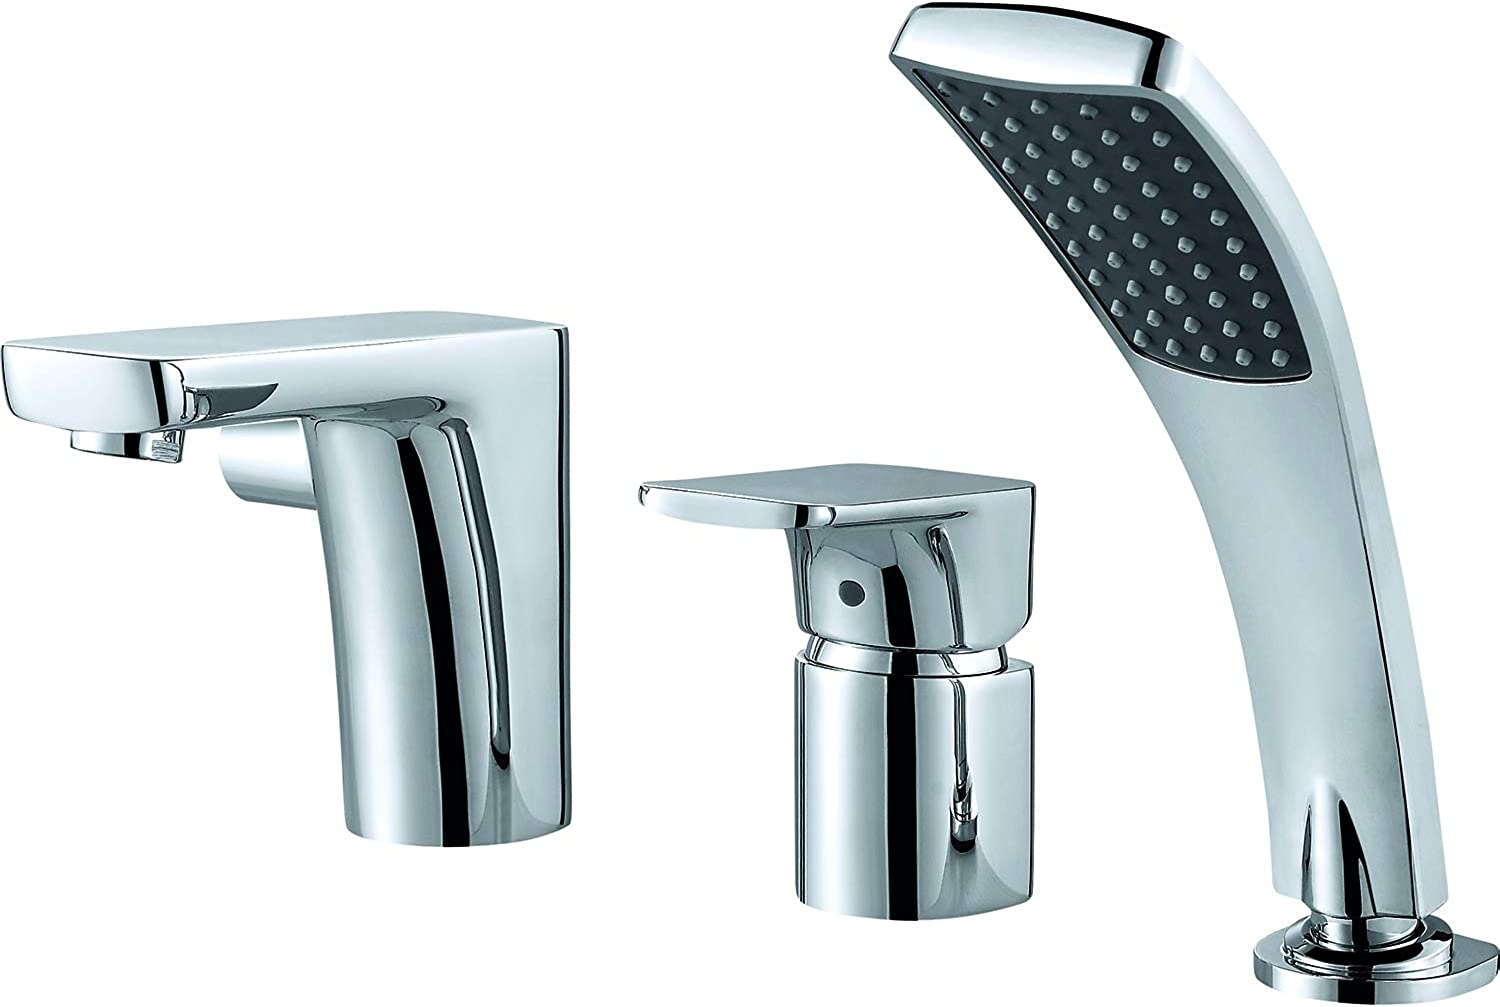 Water Save Tub Mixer Tap One-Lever Brass with Pull-Out Handheld Shower - Nickel Chrome Finish DA1434901